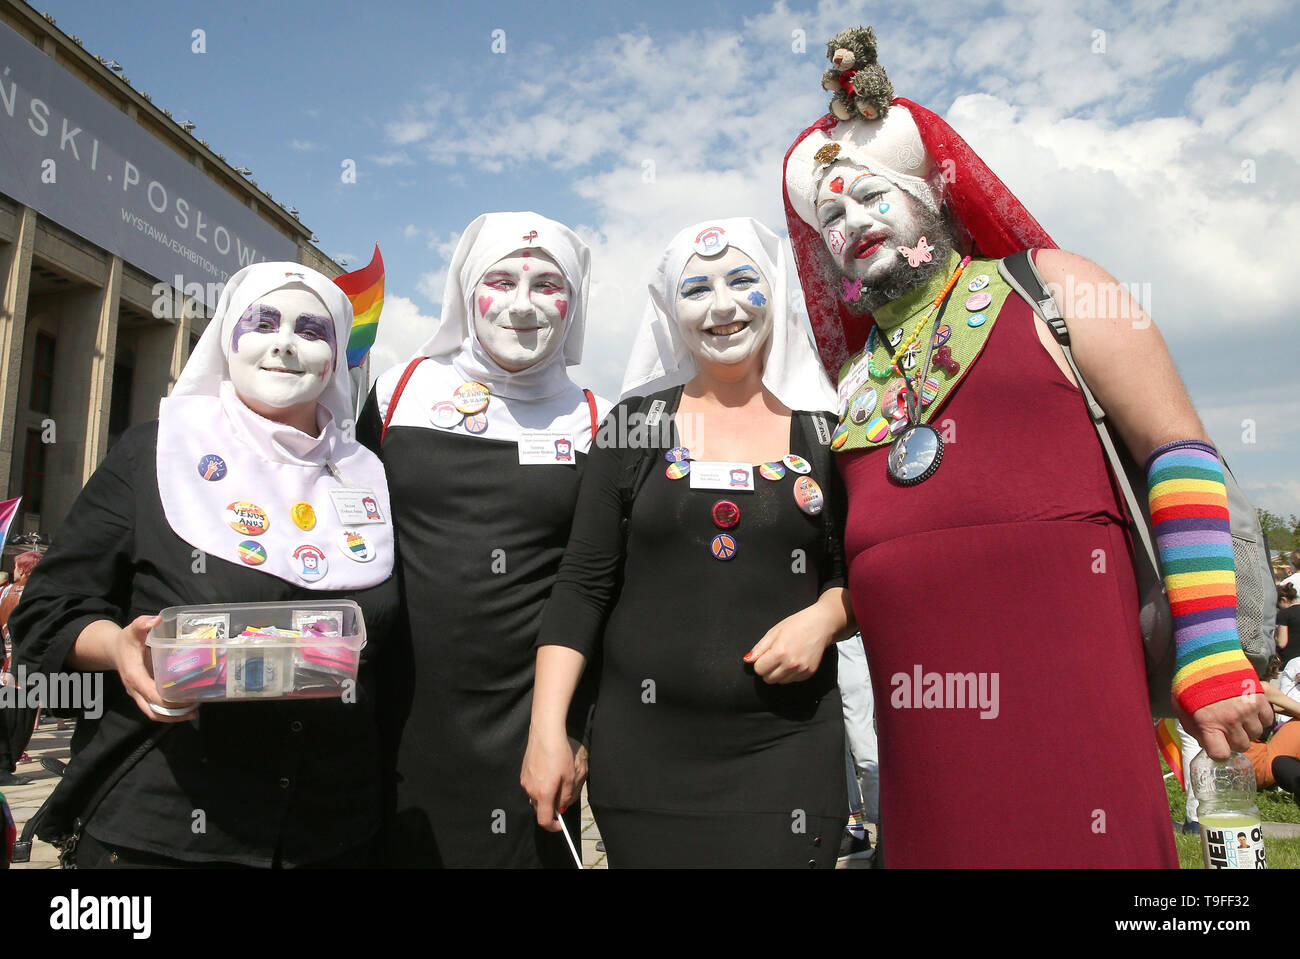 Krakow, Poland. 18th May, 2019. People are seen during the Equality March in Krakow. LGBT people and their supporters walk through the streets of Krakow to celebrate diversity and tolerance and express their opposition to discrimination and exclusion. The march was met in the city center by anti LGBT protesters from the far right organizations. Credit: Damian Klamka/SOPA Images/ZUMA Wire/Alamy Live News - Stock Image